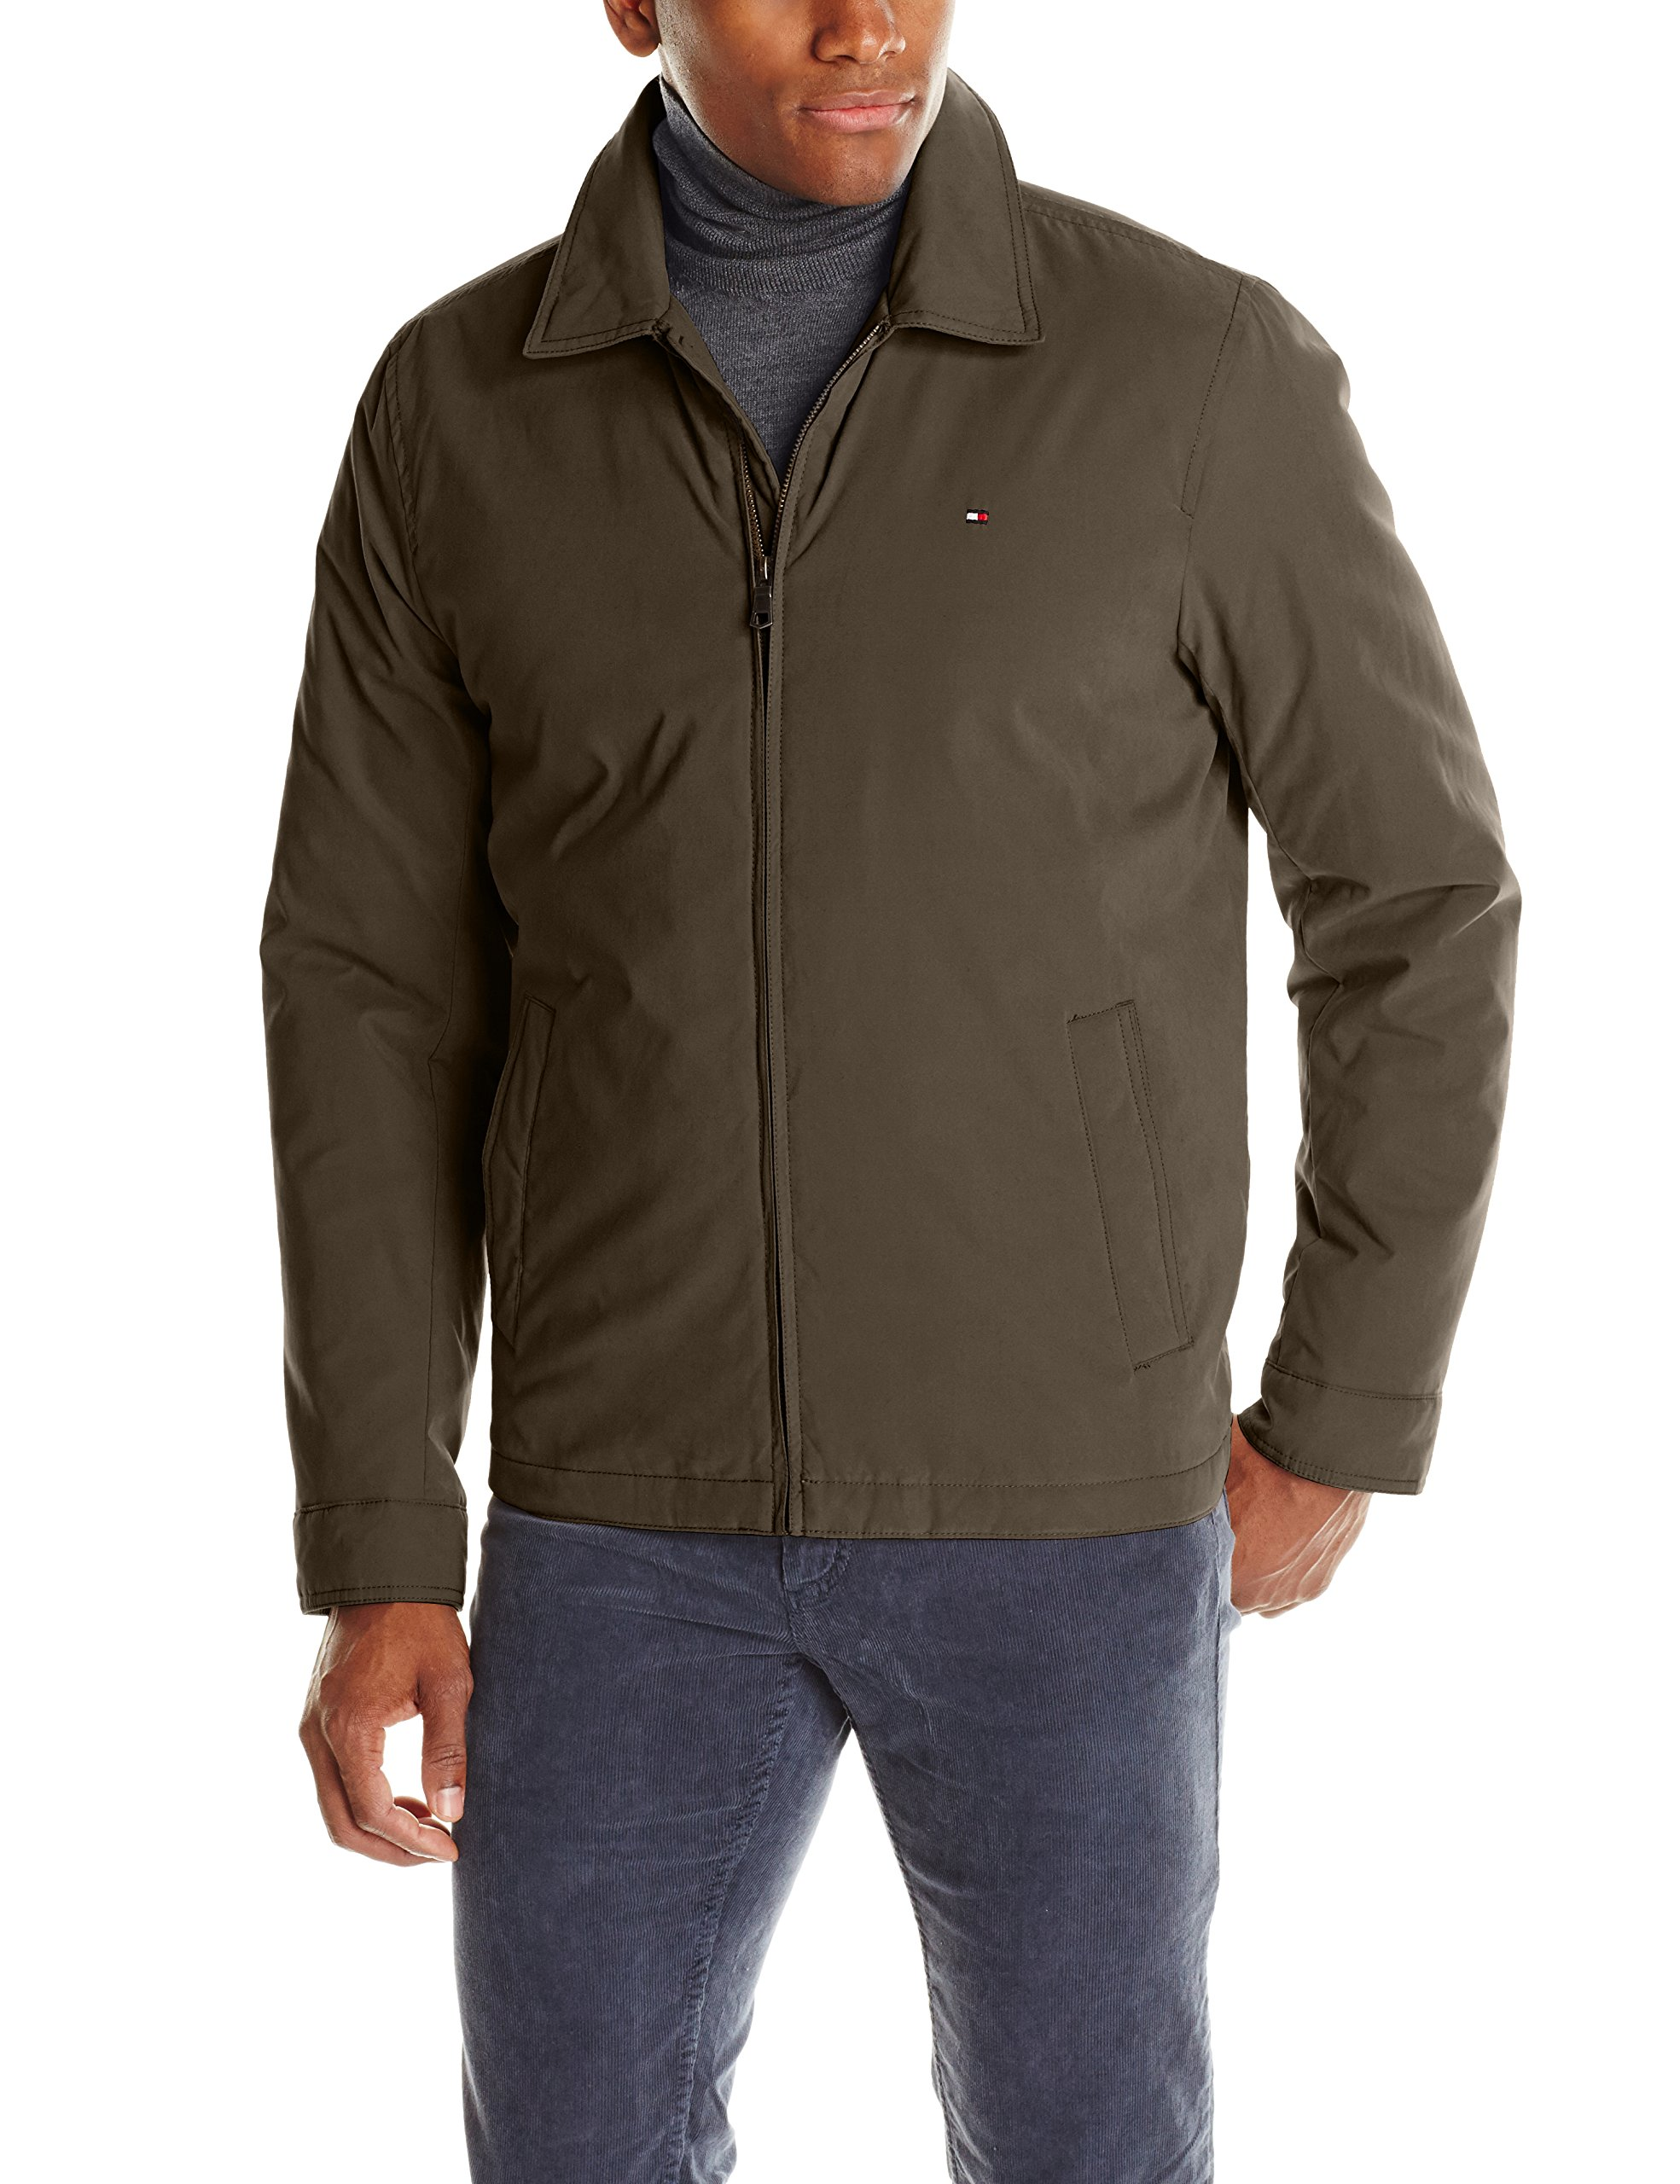 Tommy Hilfiger Men's Micro-Twill Open Bottom Zip Front Jacket, Olive, Large